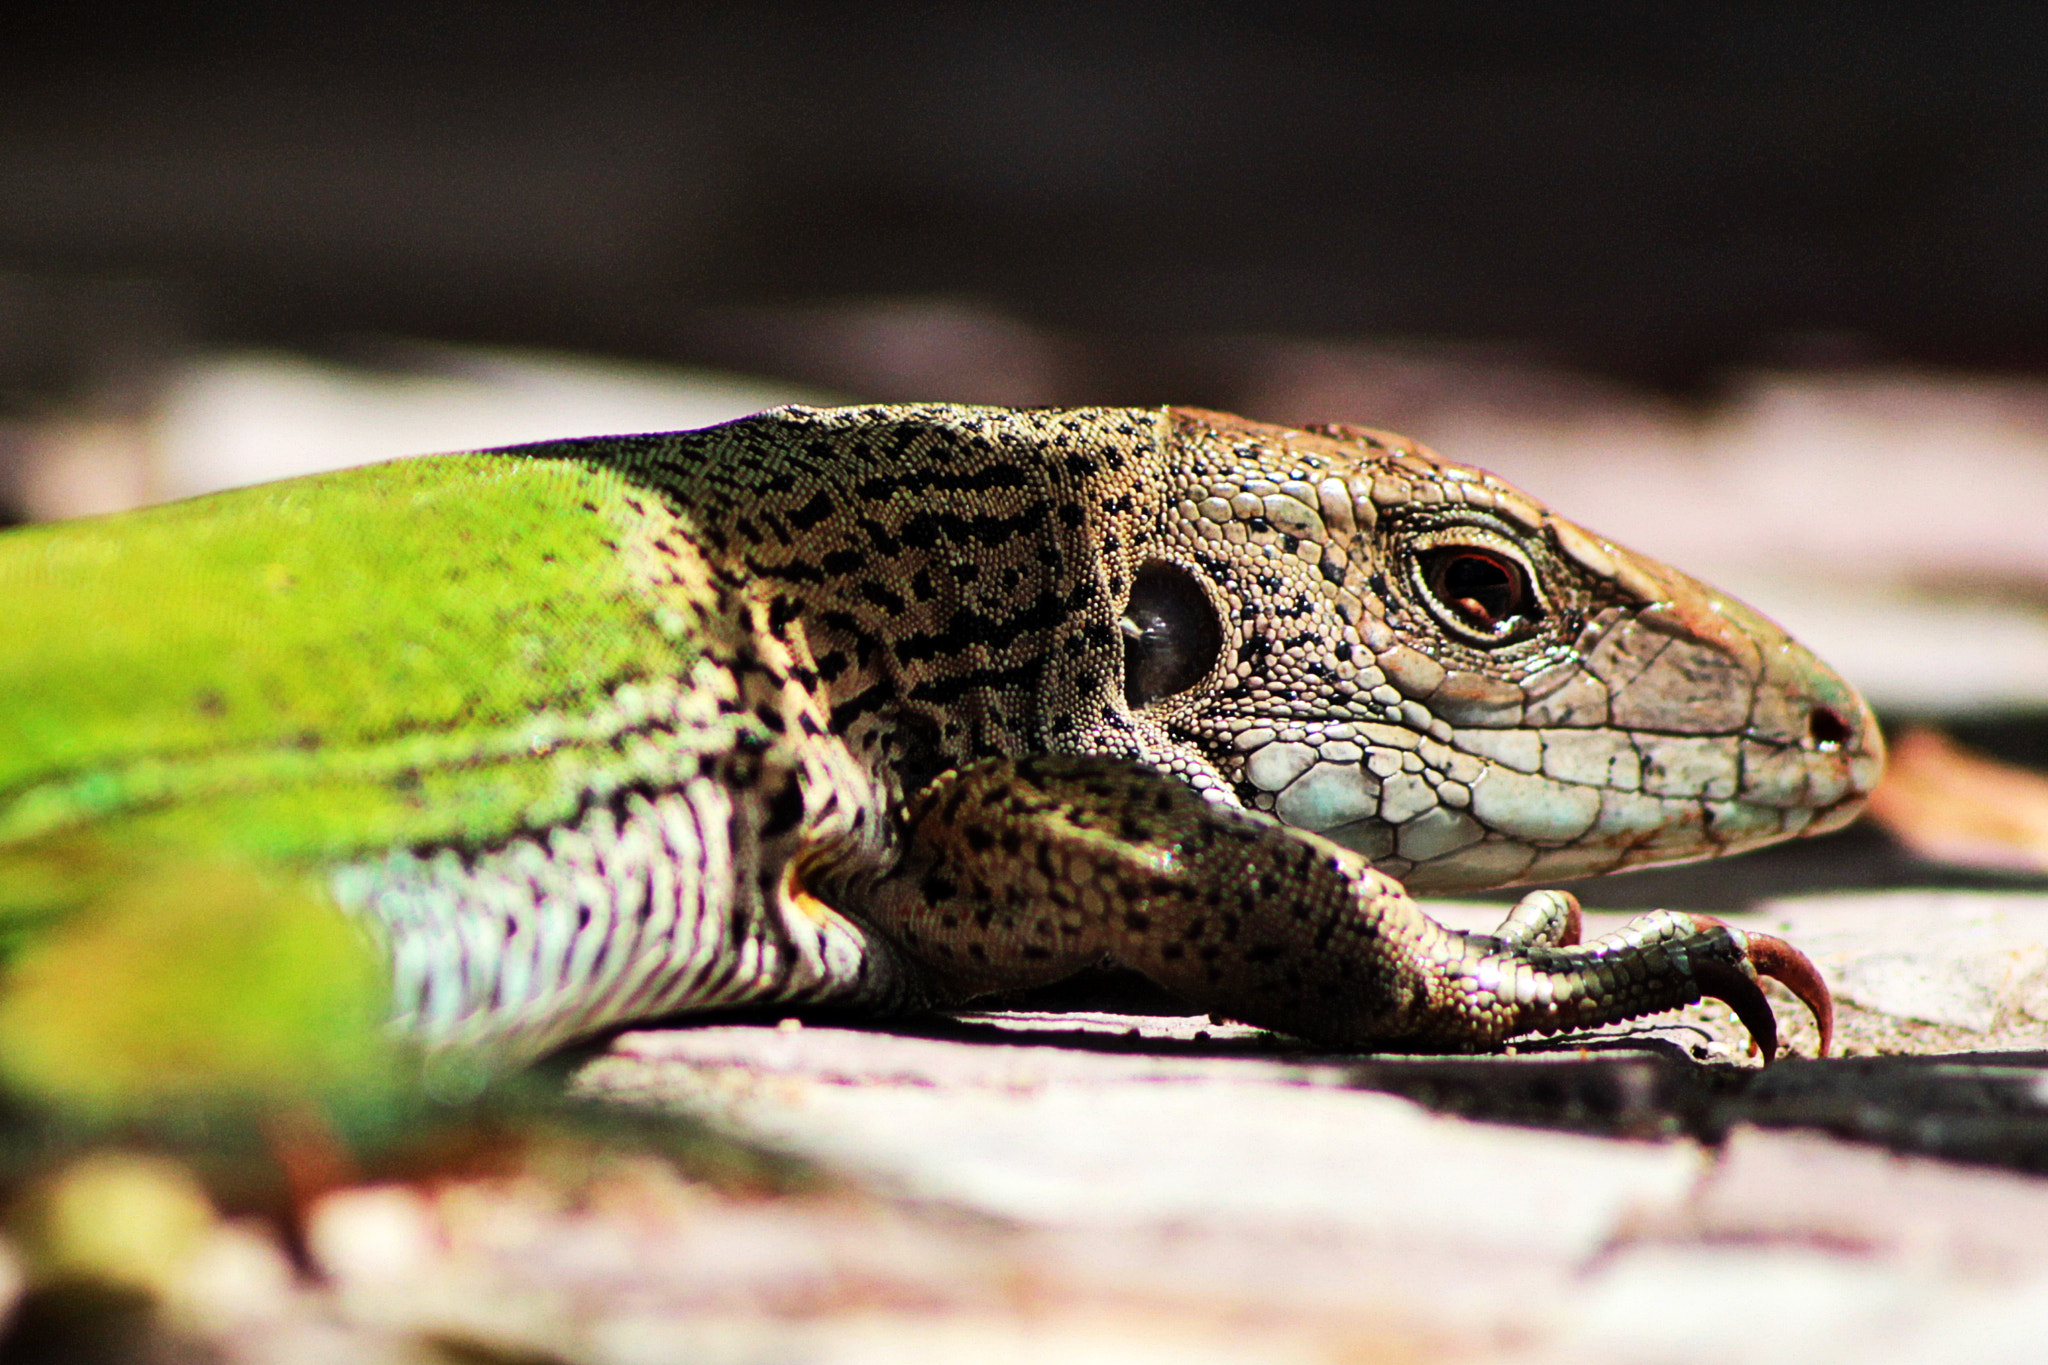 Photograph Ameiva ameiva by Fred Schueler on 500px